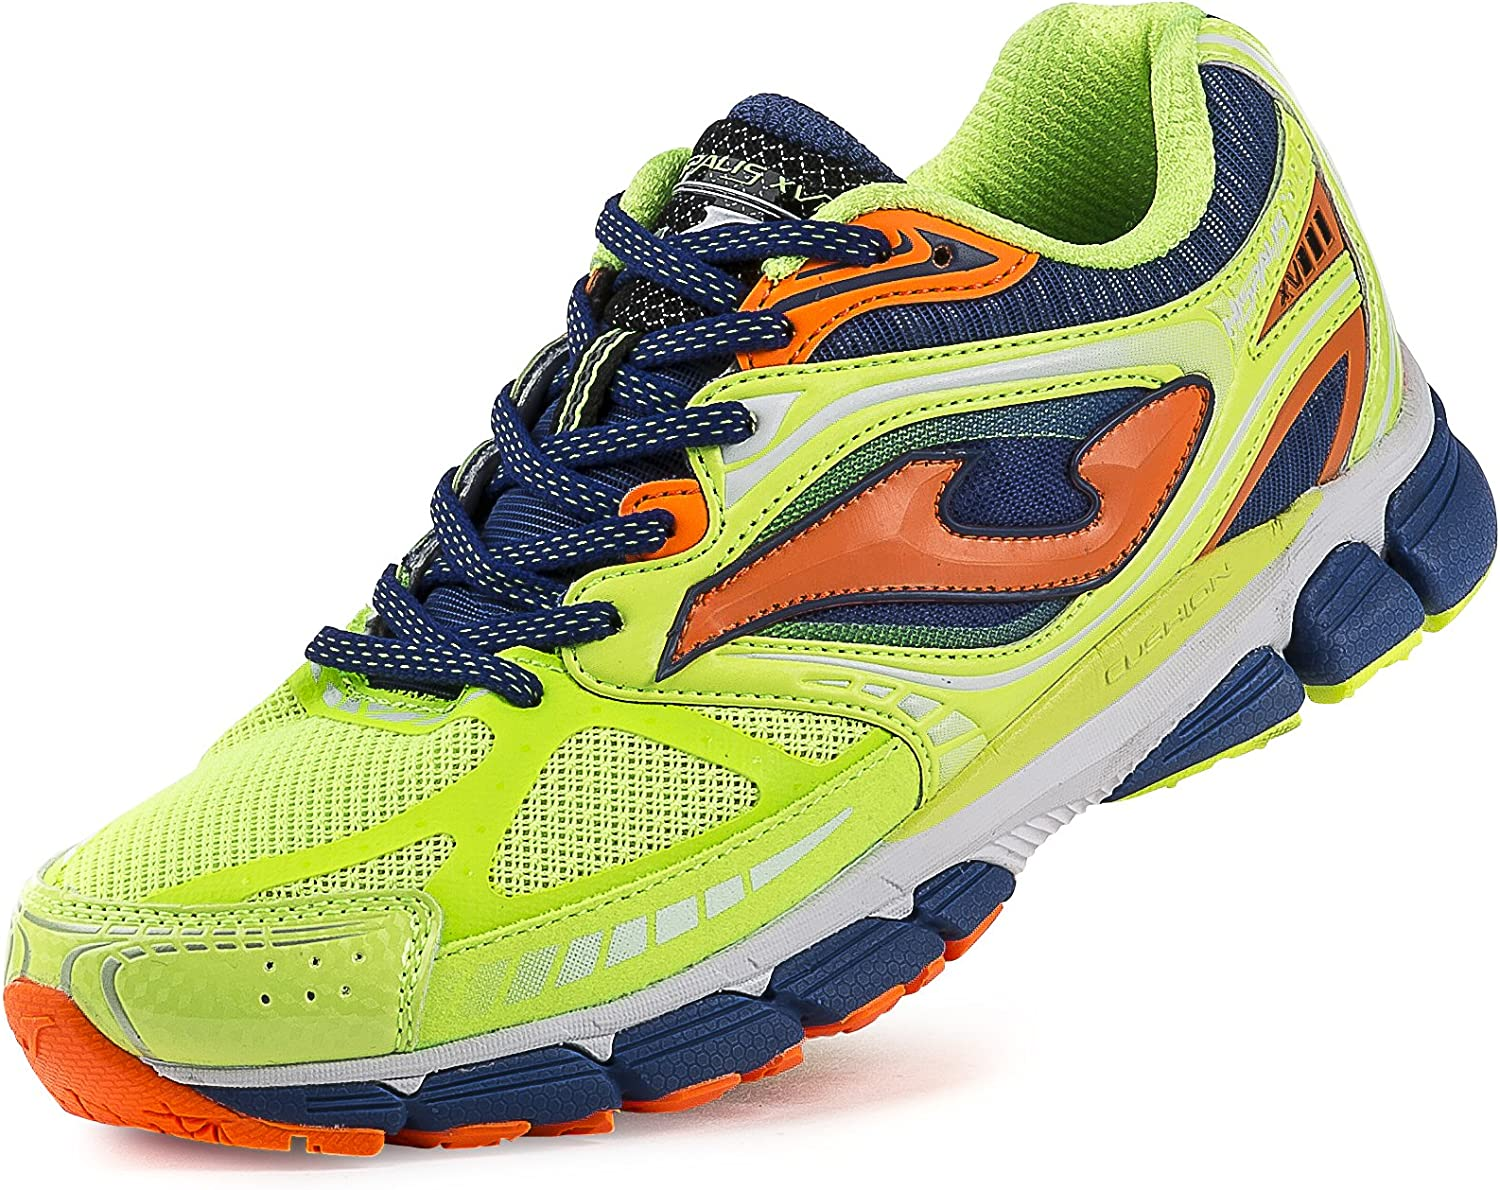 Joma - Hispalis, Color Verde,Naranja,Azul, Talla UK-7.5: Amazon.es ...